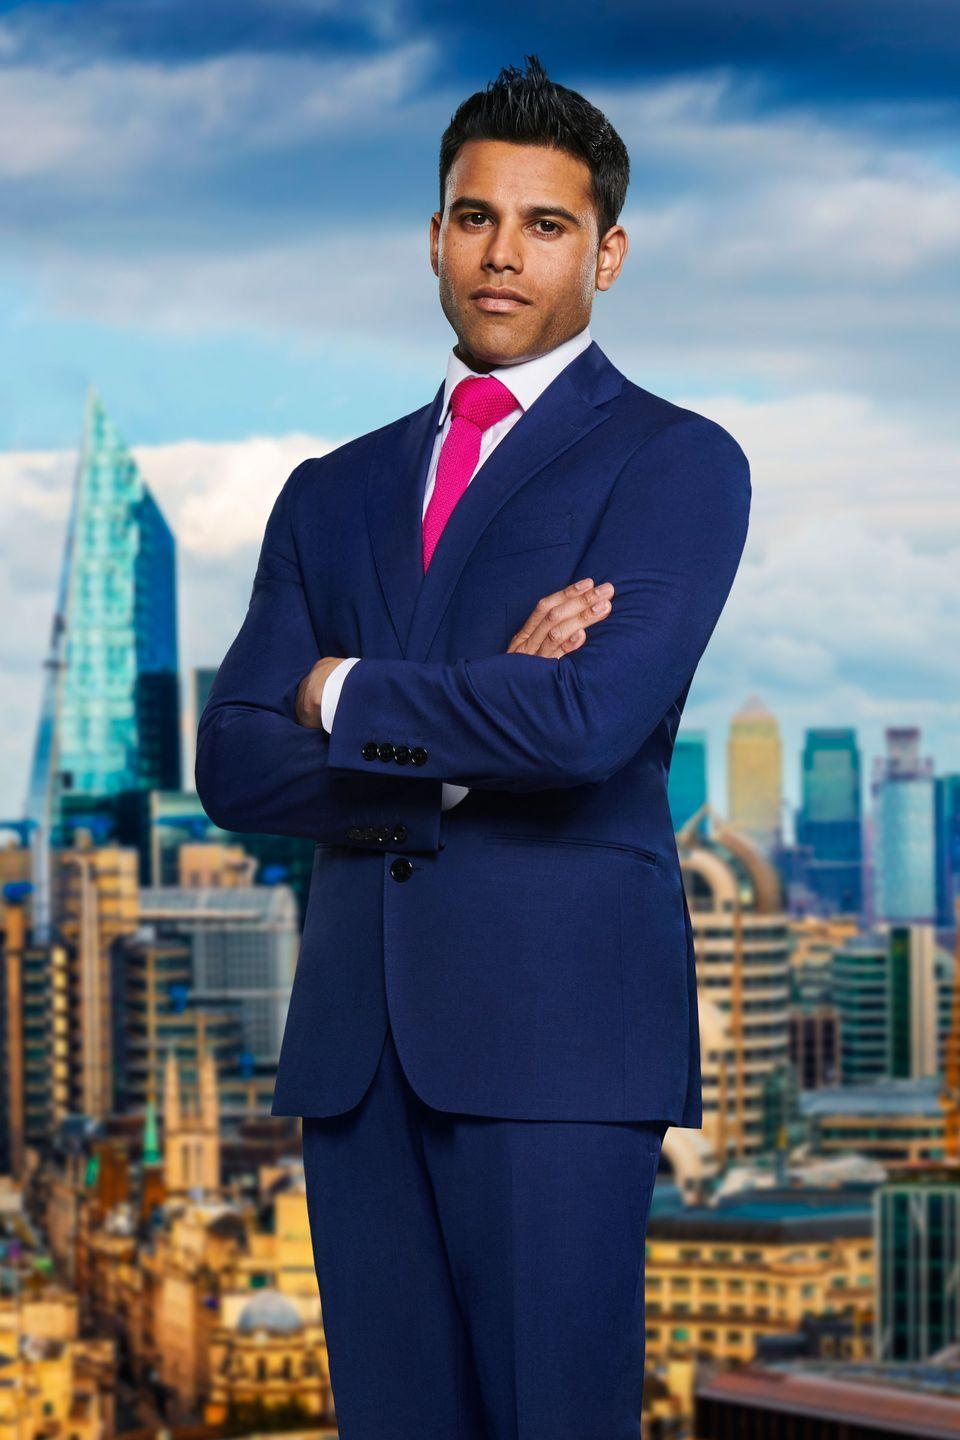 """<p>""""I love business more than sharks love blood…I'm ruthless in my pursuit of success.""""</p><p>Shahin, 36, from Birmingham, is a chartered engineer who says Elon Musk is one of his role models because he """"thinks outside the box"""", a quality he prides himself in having. He believes having a plan and being able to execute it well is key to success.</p>"""